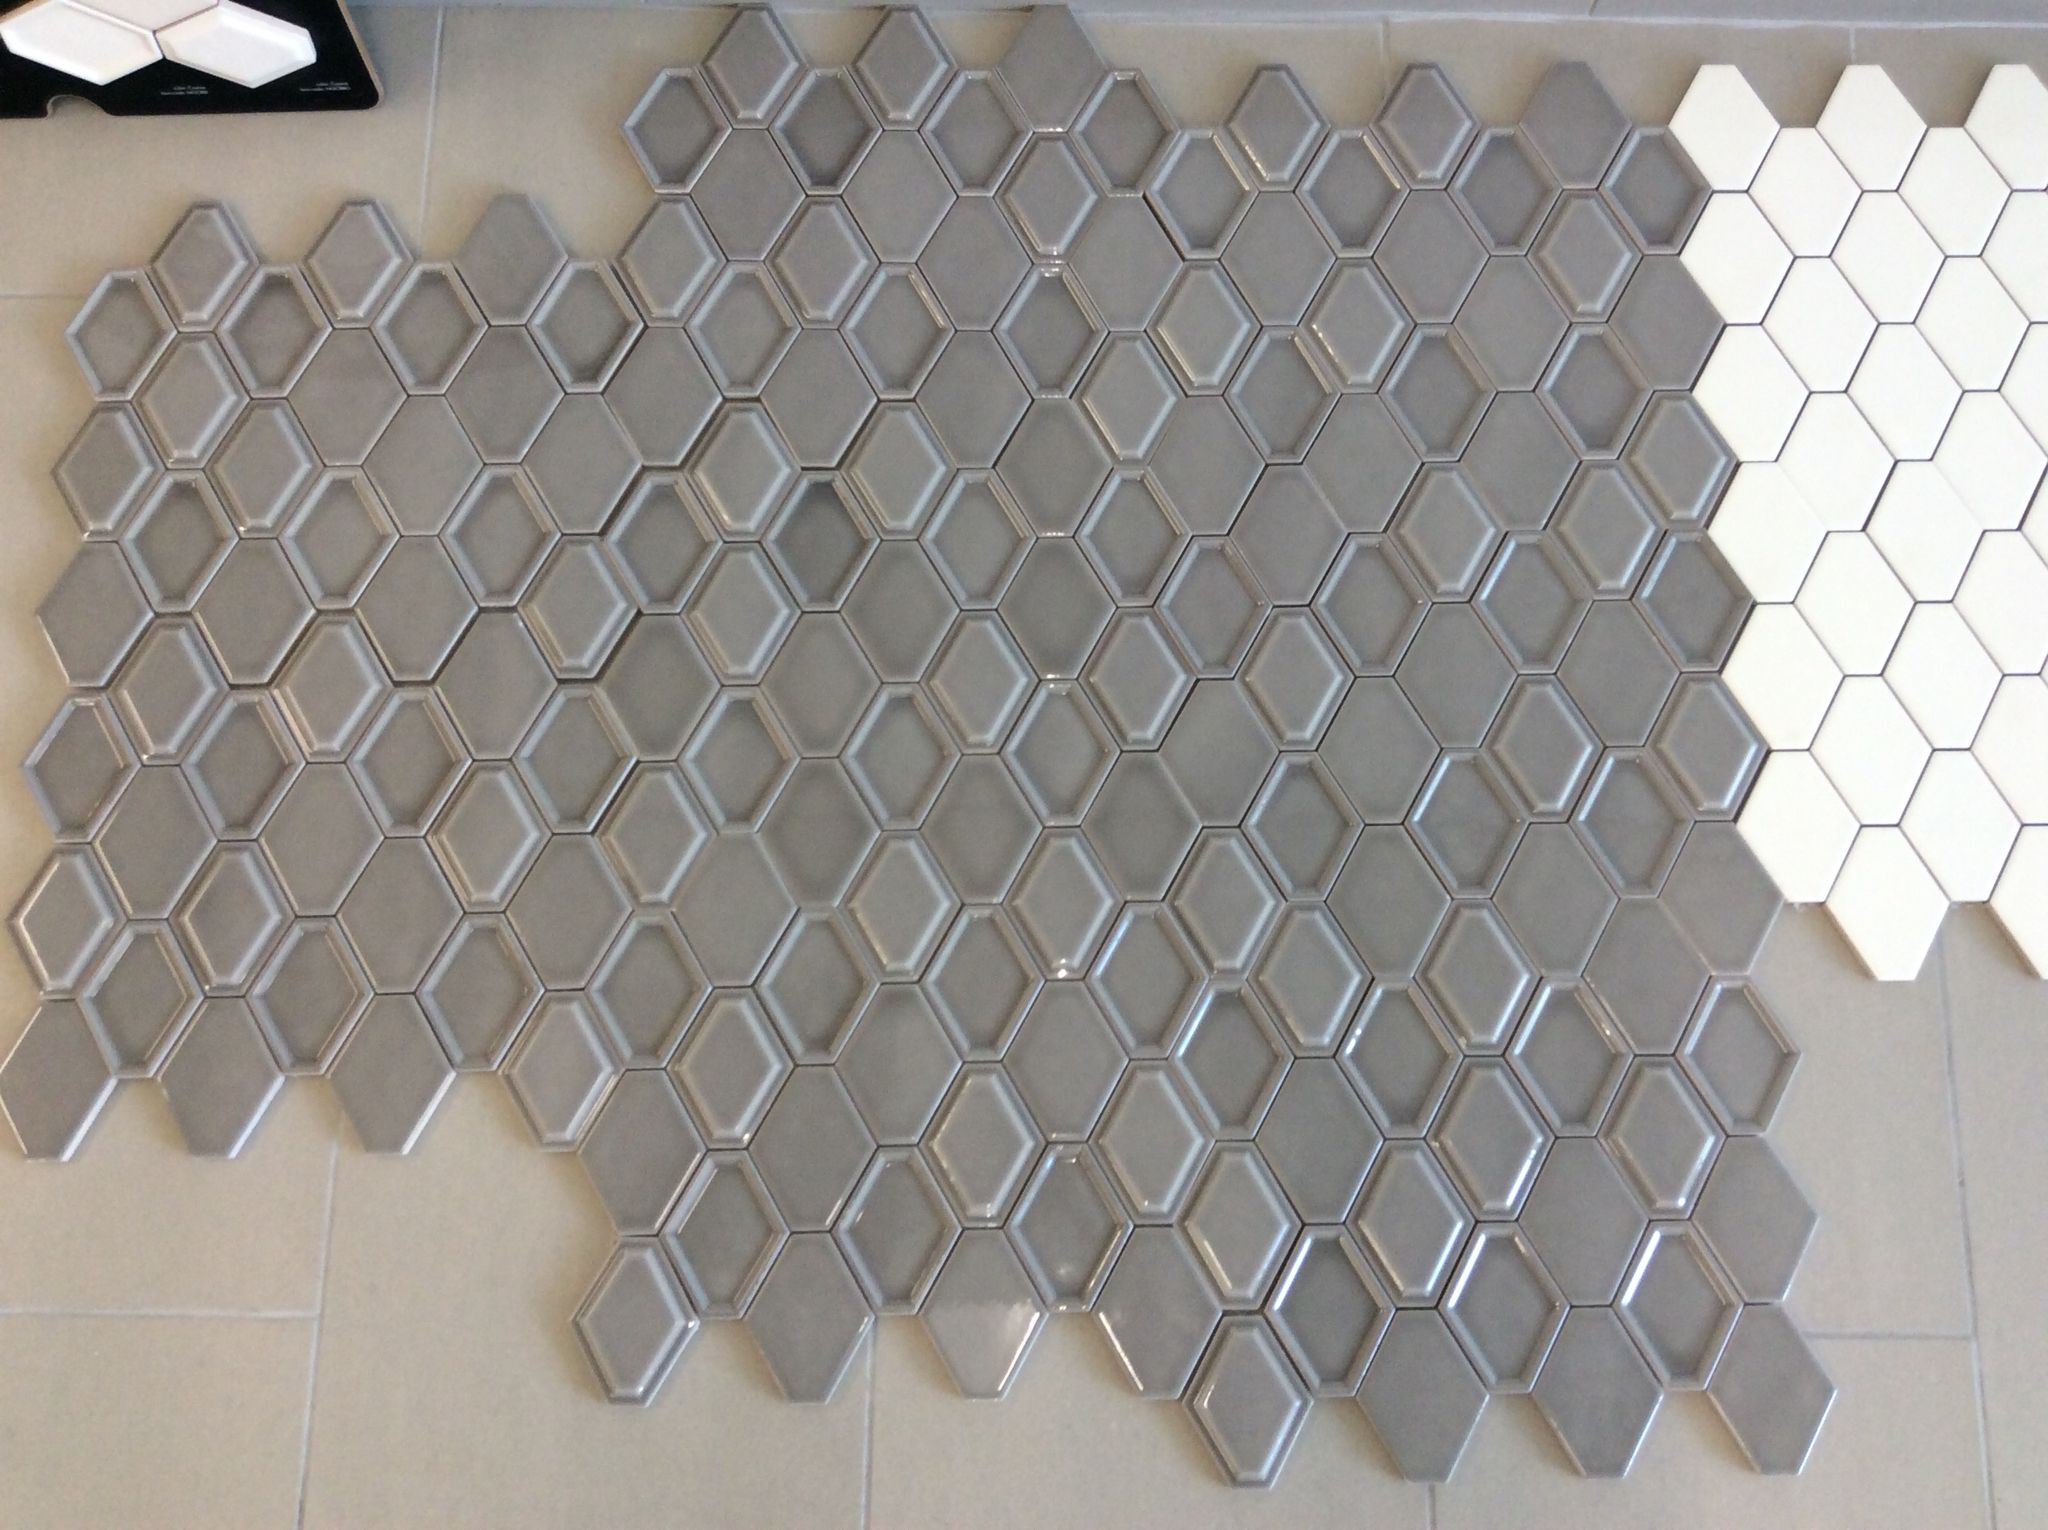 Nova Hex By Bellavita Tile Smoke Pictured Mixed Style Mosaic Flat Bevel In Bevel Out Mixed Mos Kitchen Tiles Backsplash House Design Interior Architecture